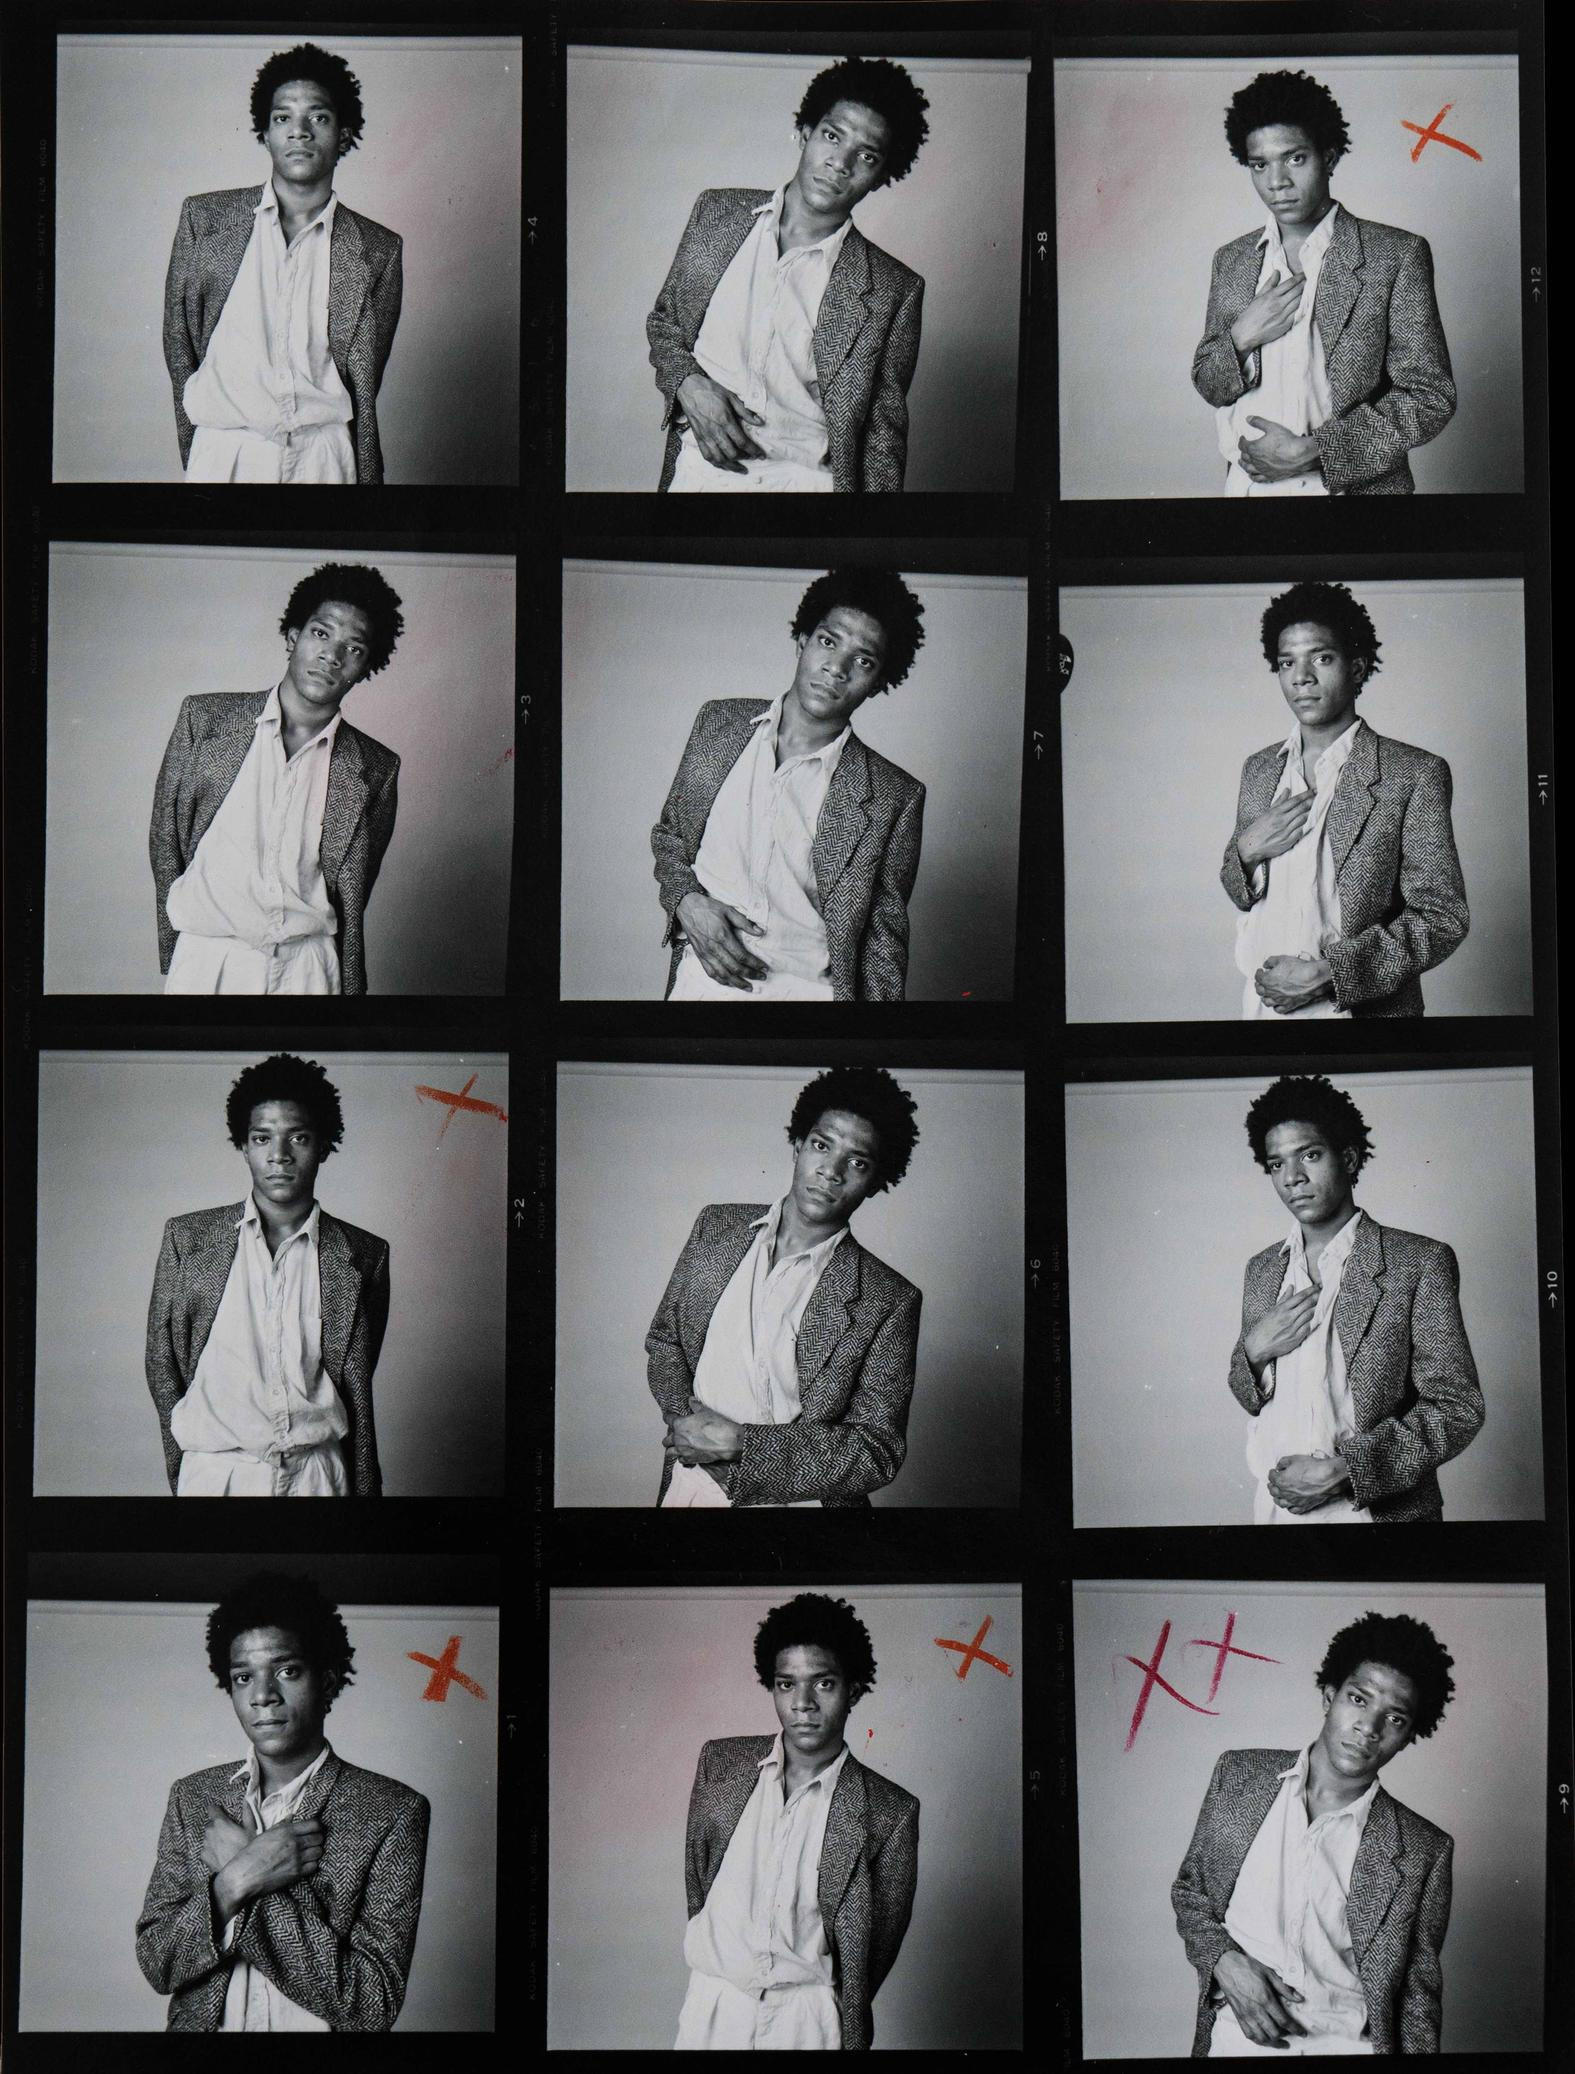 Contact sheet and extract from Richard Corman's 'A Portrait' book.